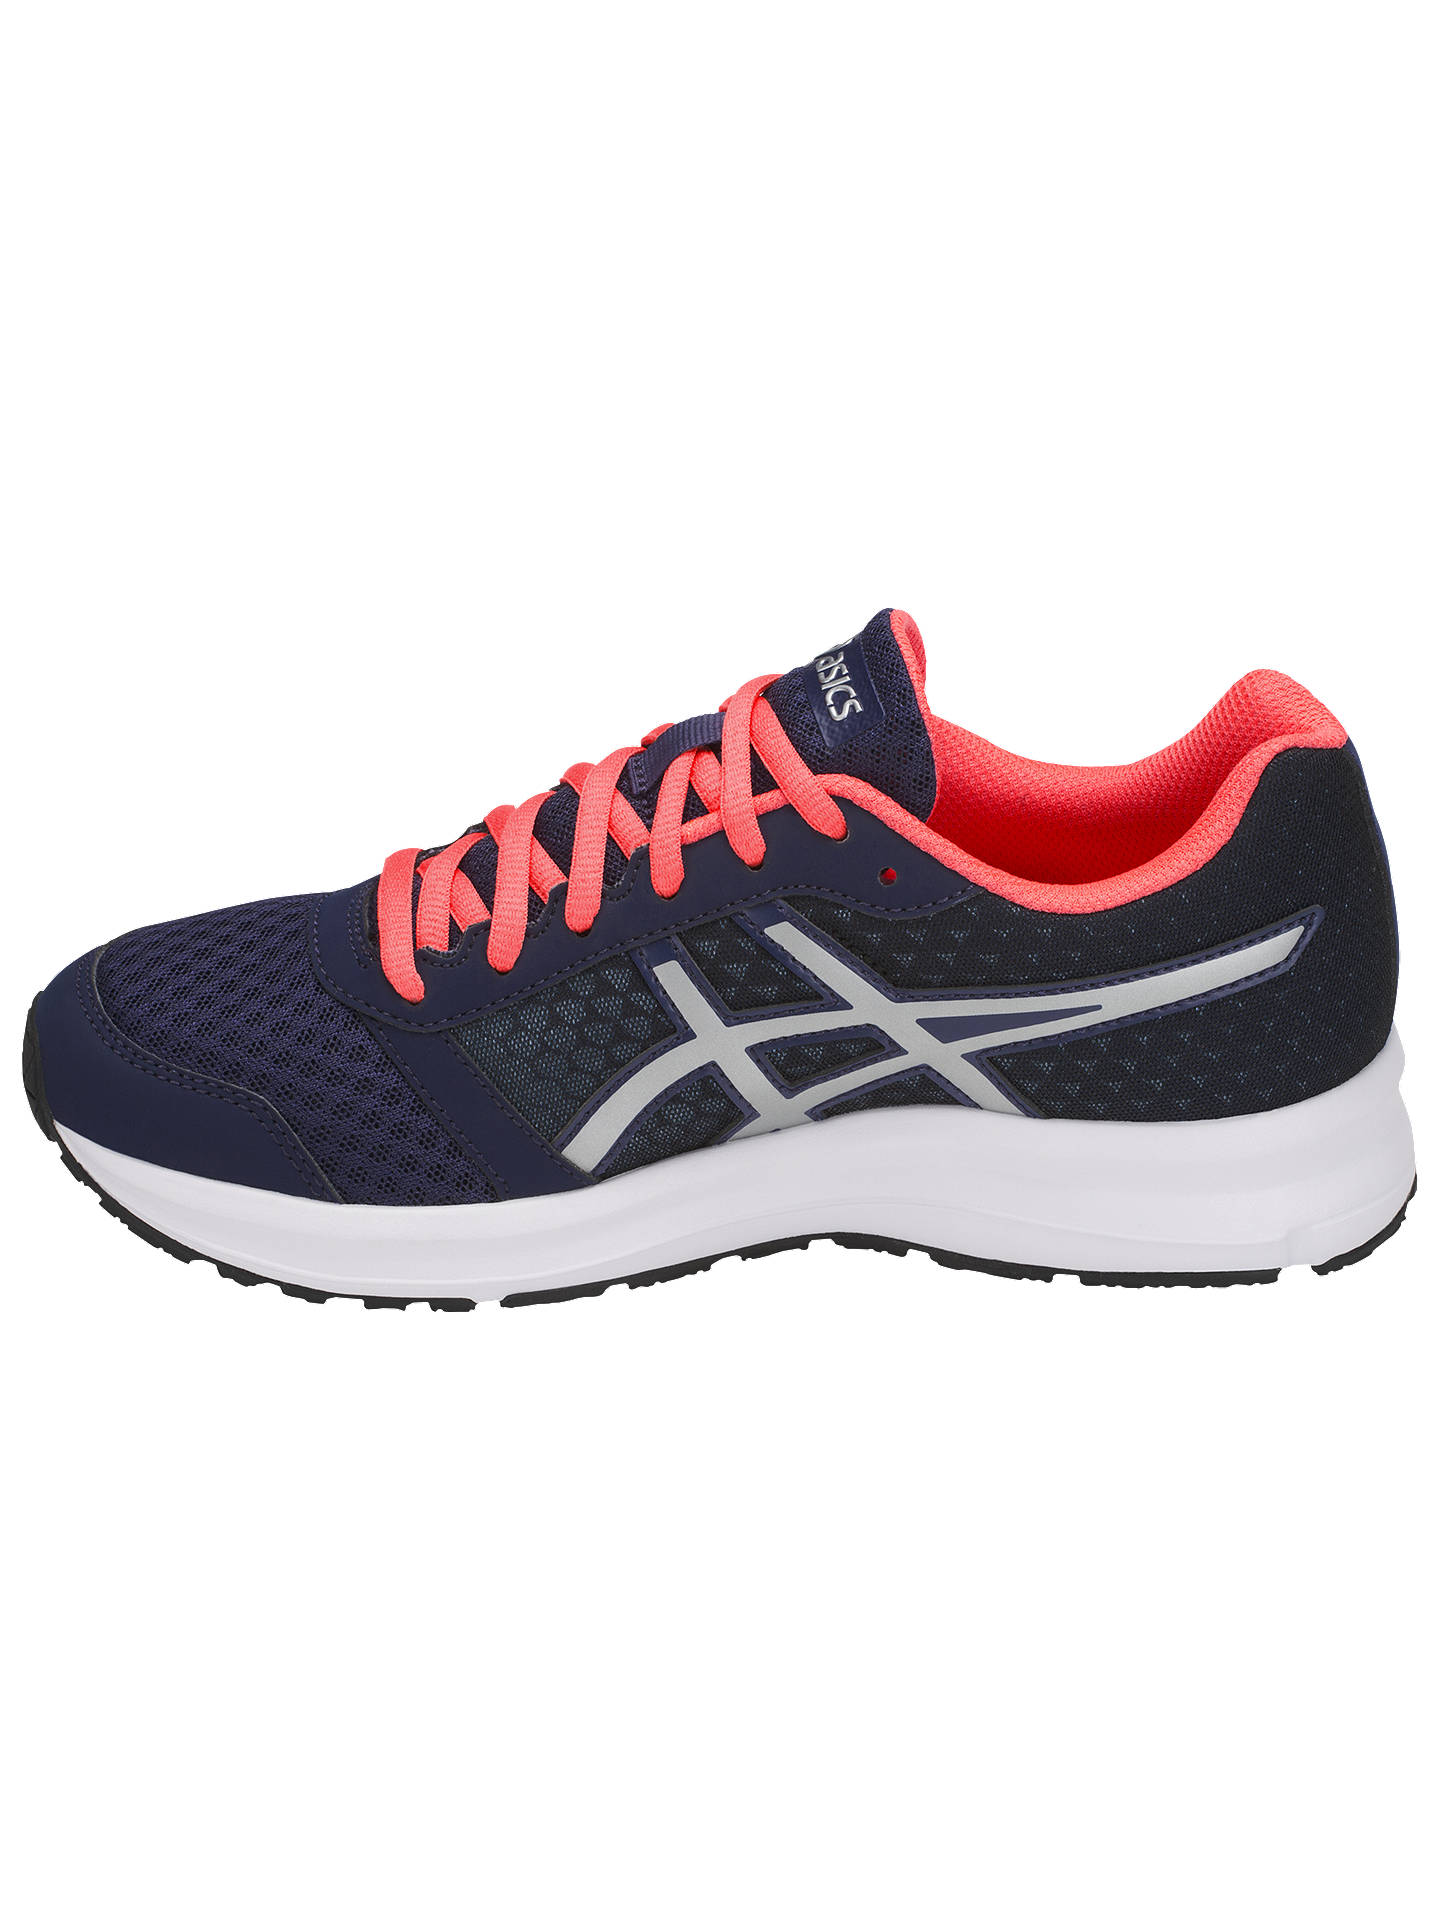 malta Azul semiconductor  Asics Patriot 9 Women's Running Shoes | Blue/Silver at John Lewis & Partners